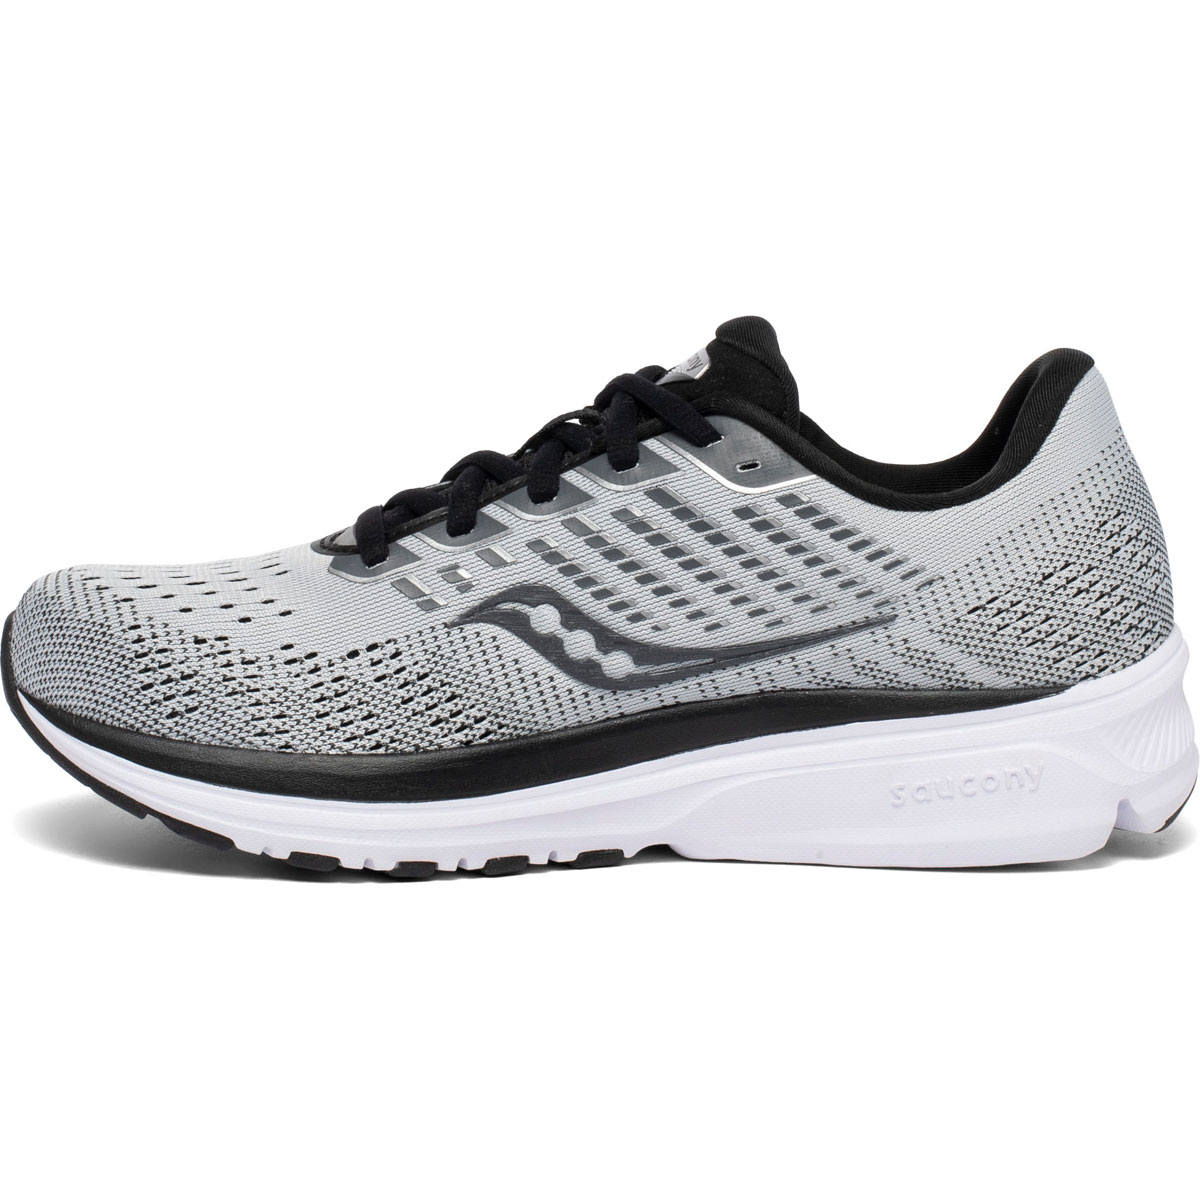 Women's Saucony Ride 13 Running Shoe  - Color: Alloy/Black - Size: 5 - Width: Regular, Alloy/Black, large, image 2